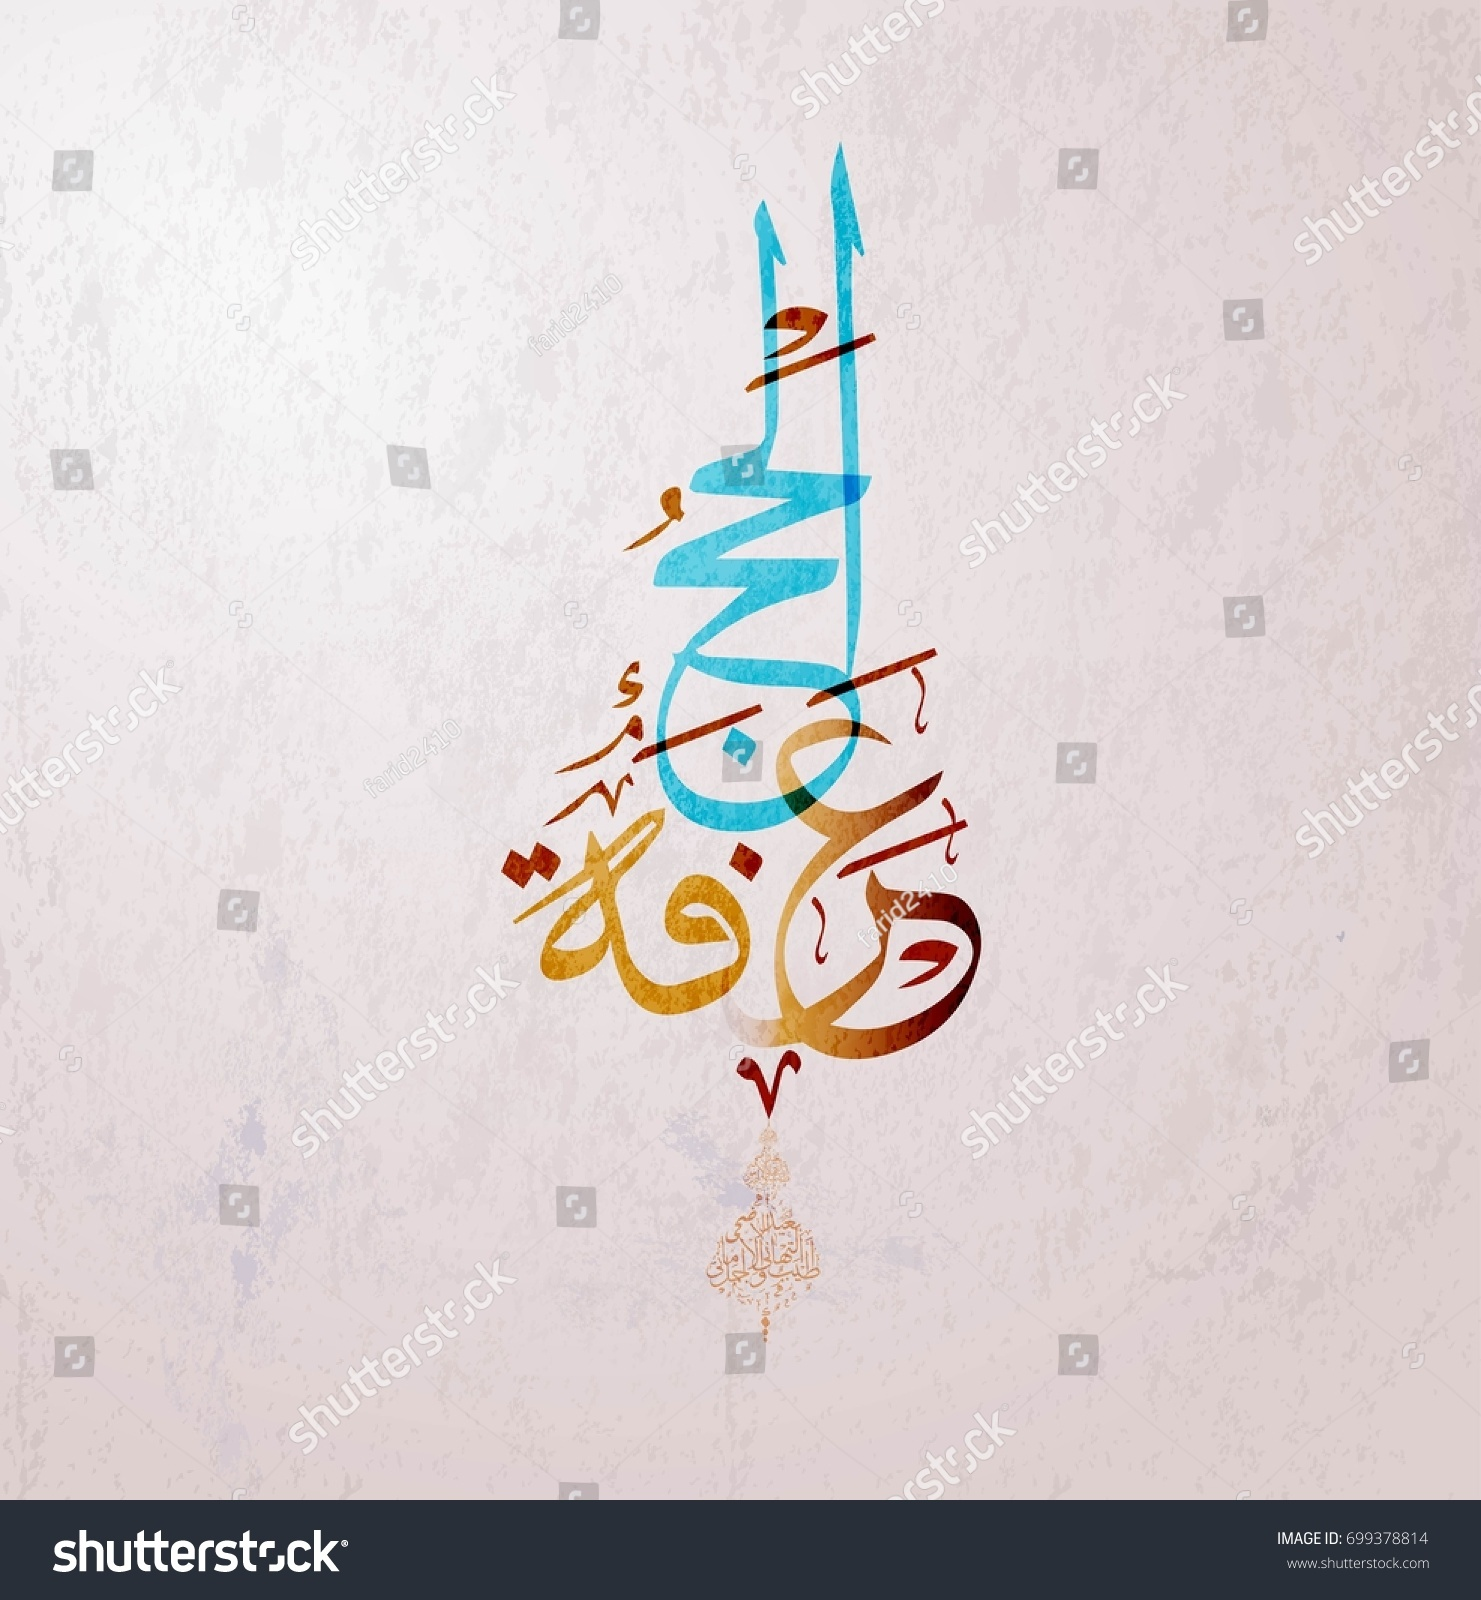 Hajj greeting arabic calligraphy art spelled stock vector 699378814 hajj greeting in arabic calligraphy art spelled as hajj mabrour and translated as kristyandbryce Images